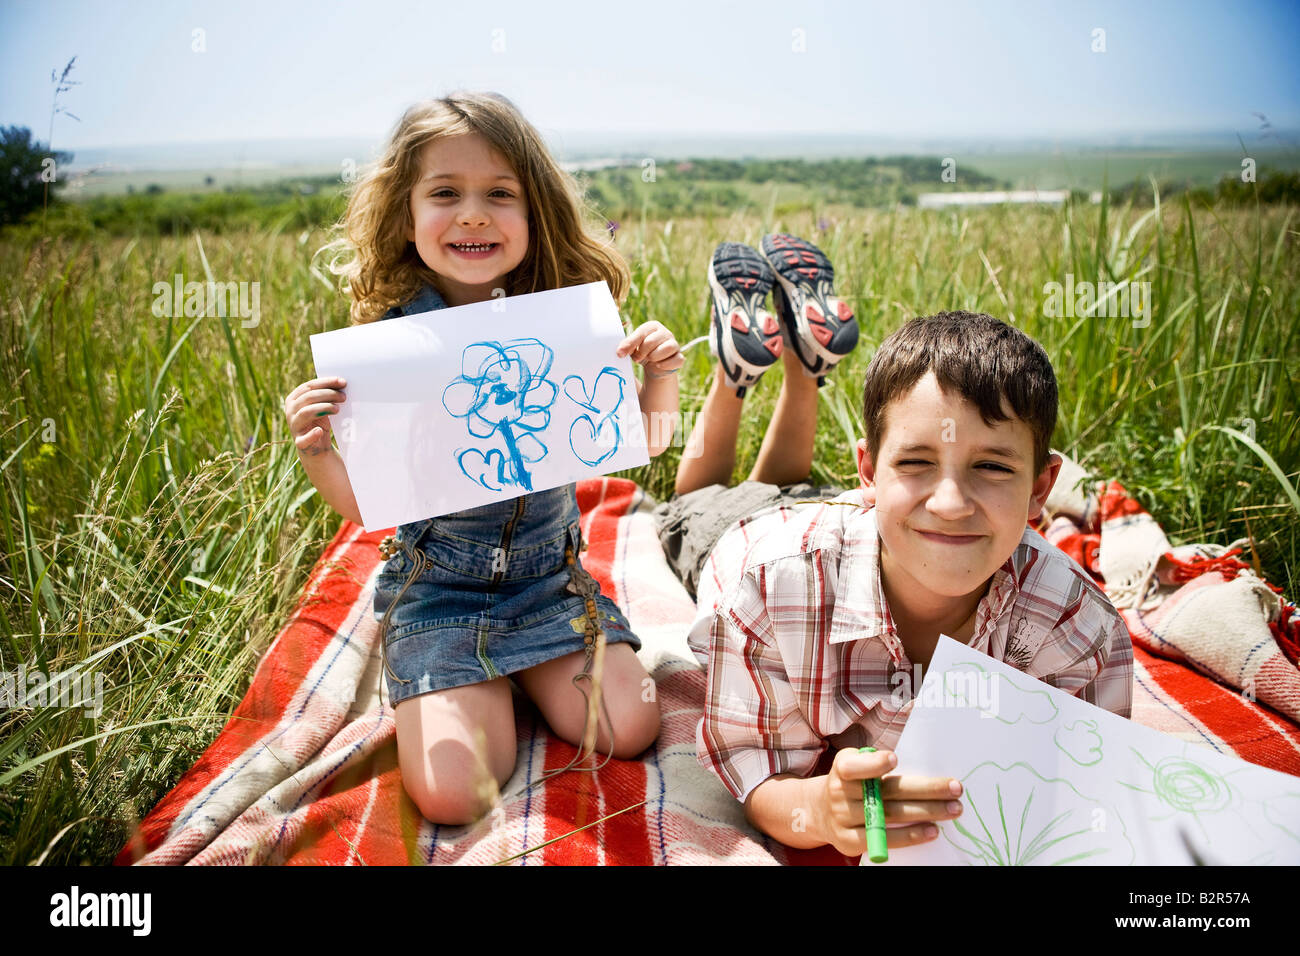 Two children showing their drawings - Stock Image